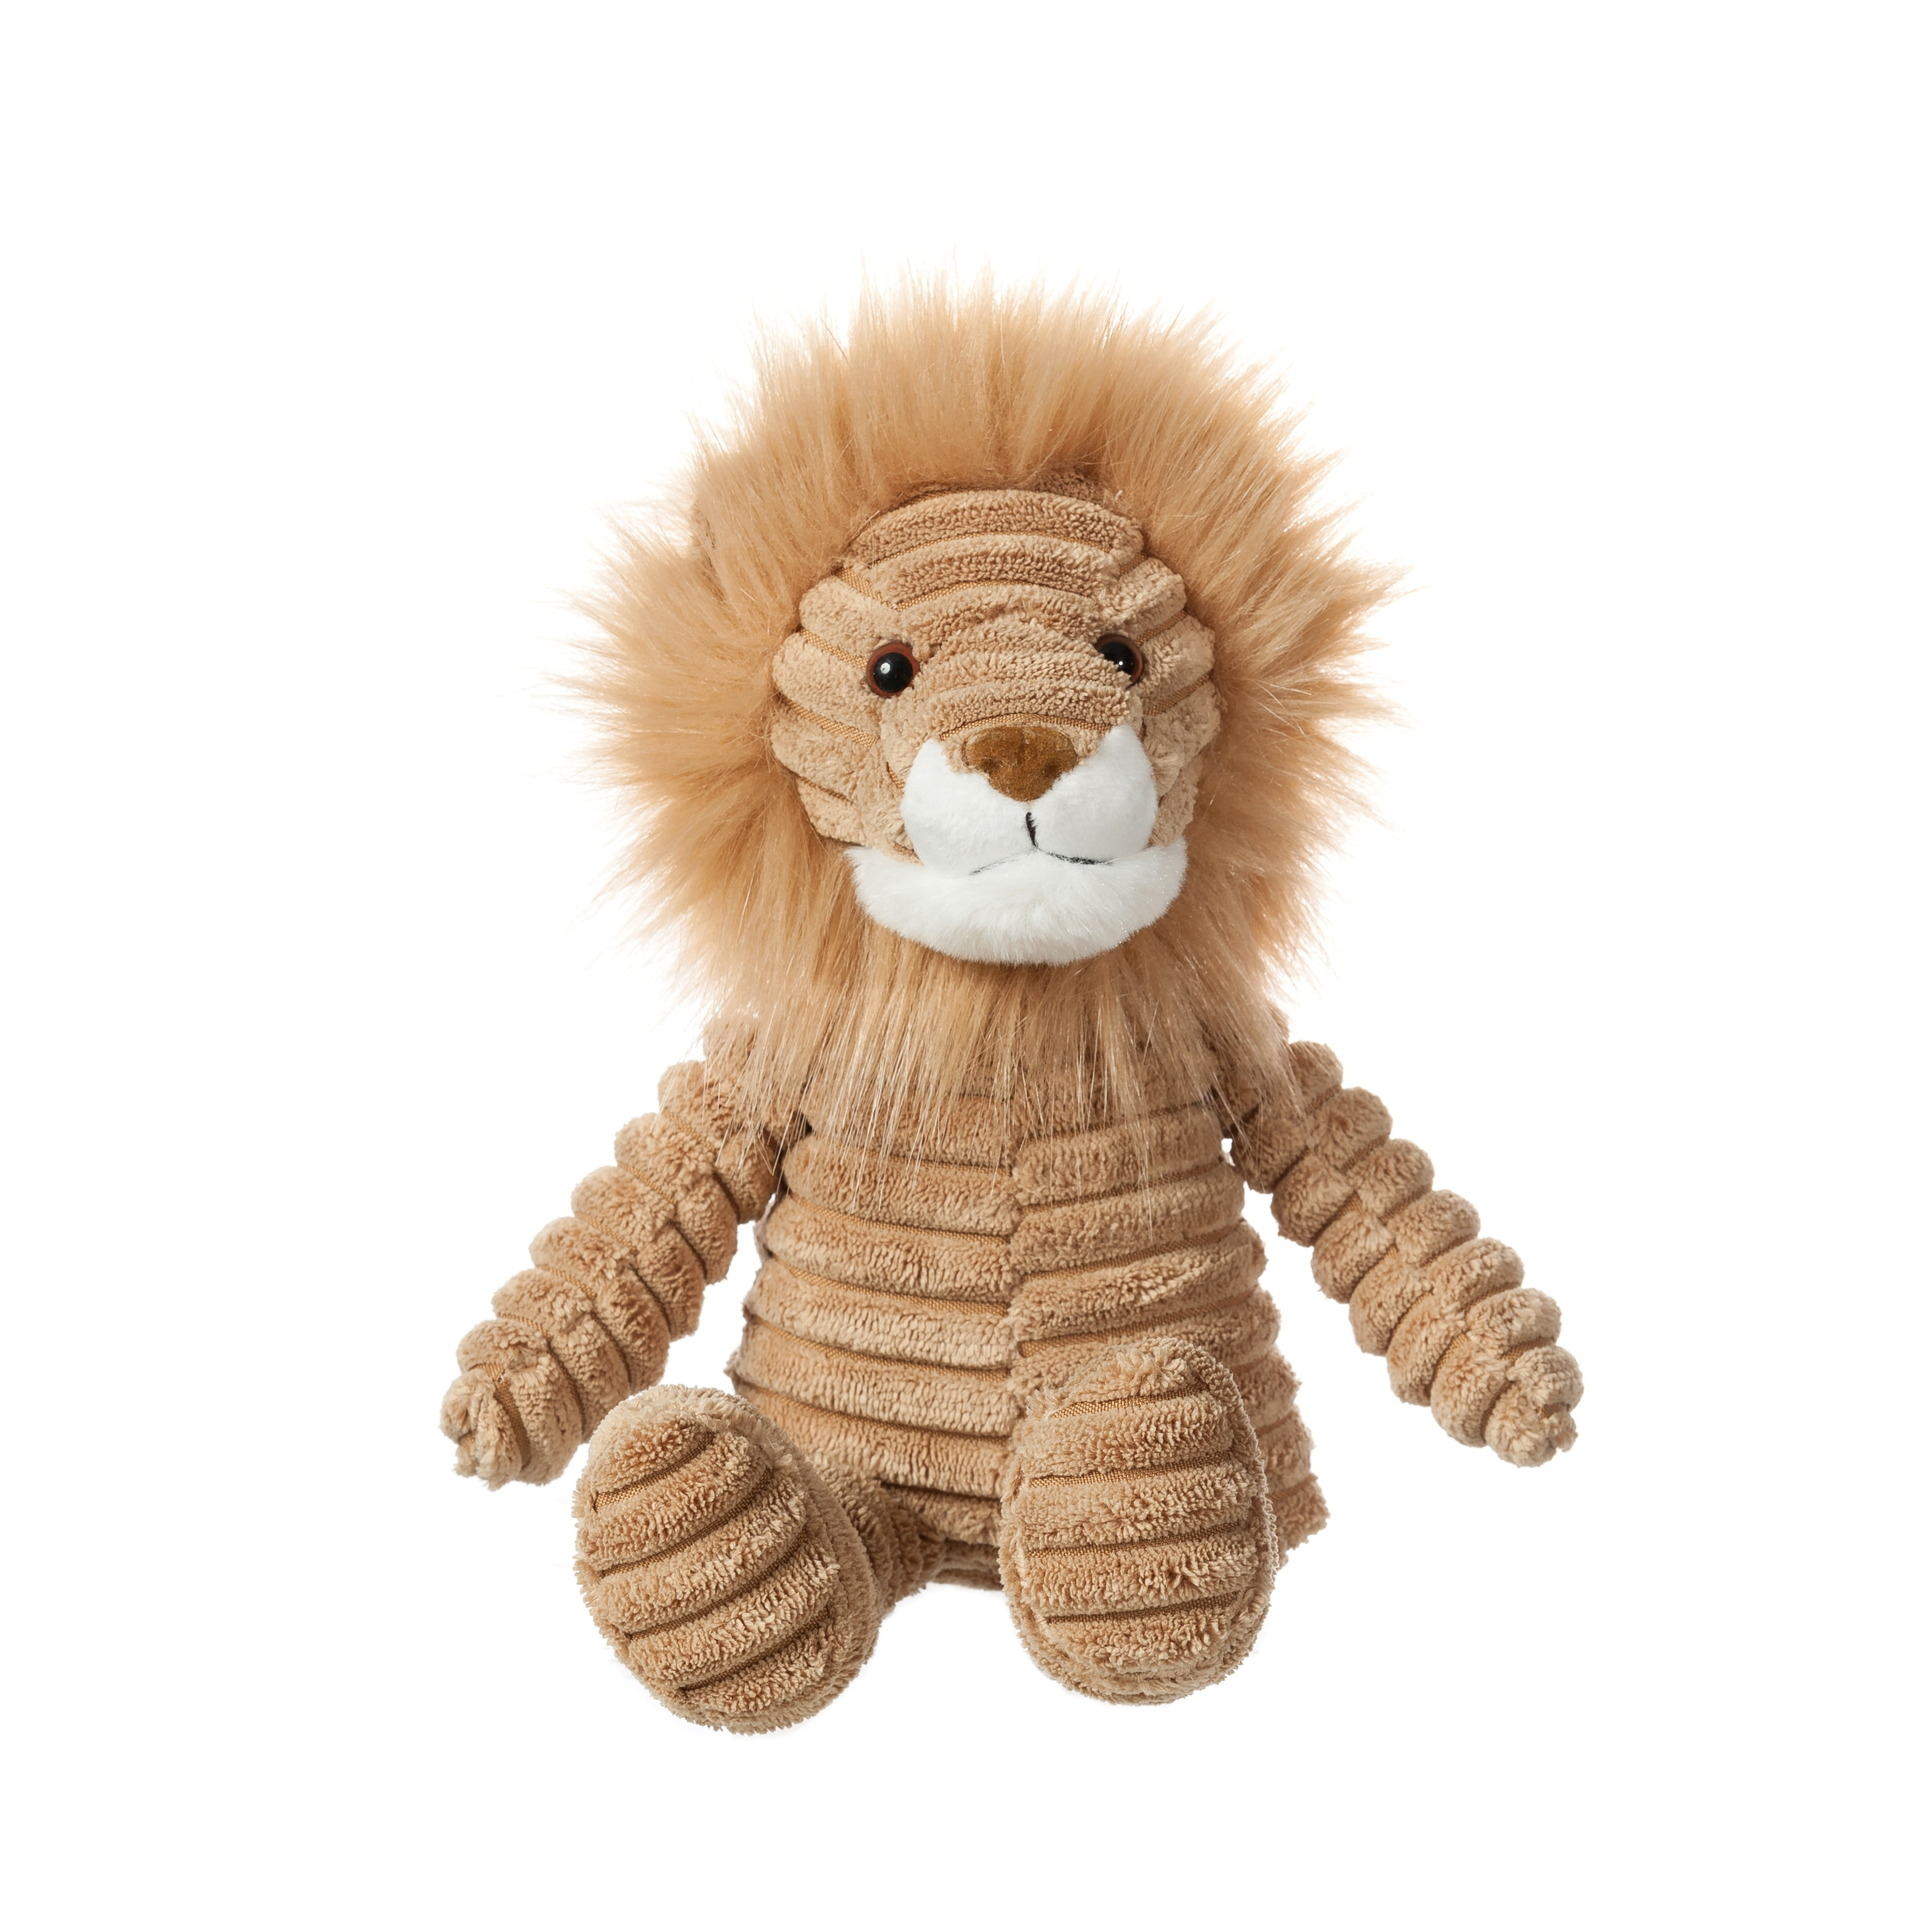 Cute Stuffed Toy Lion Soft Toy Lion Plush Toy Lion Buy Stuffed Toy